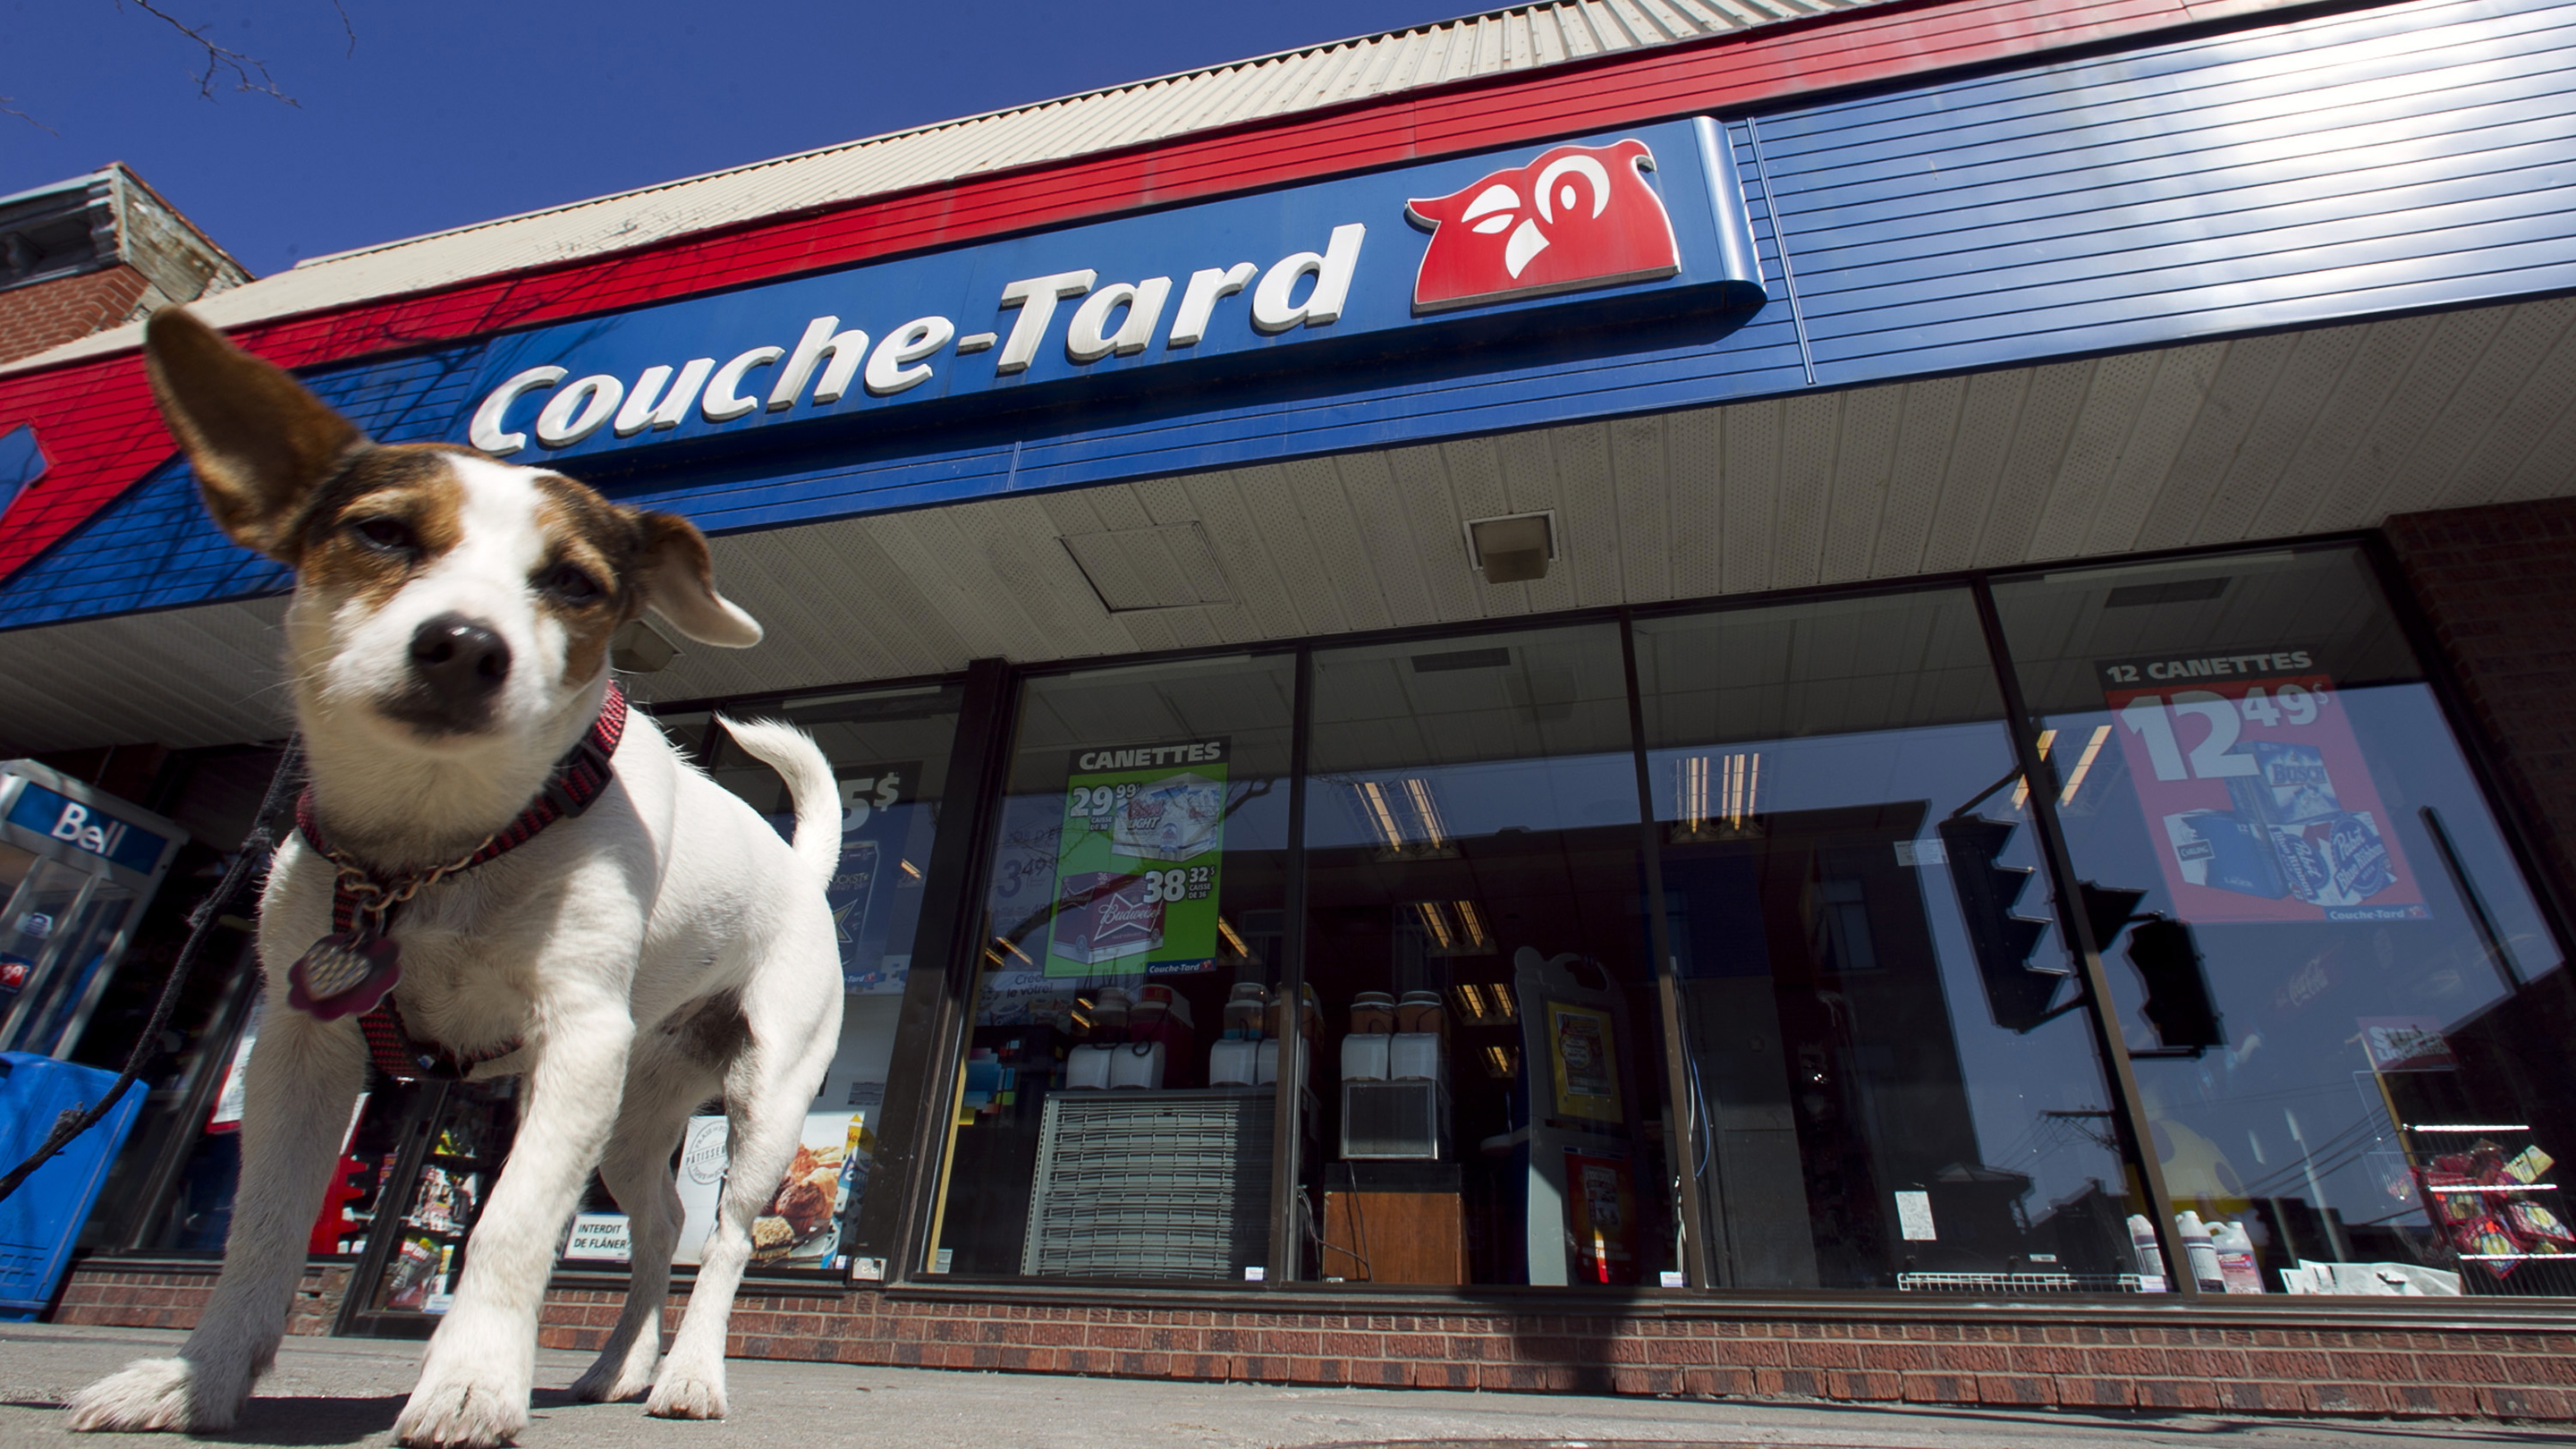 A dog named Roxy waits outside a Couche-Tard convenience store in Montreal